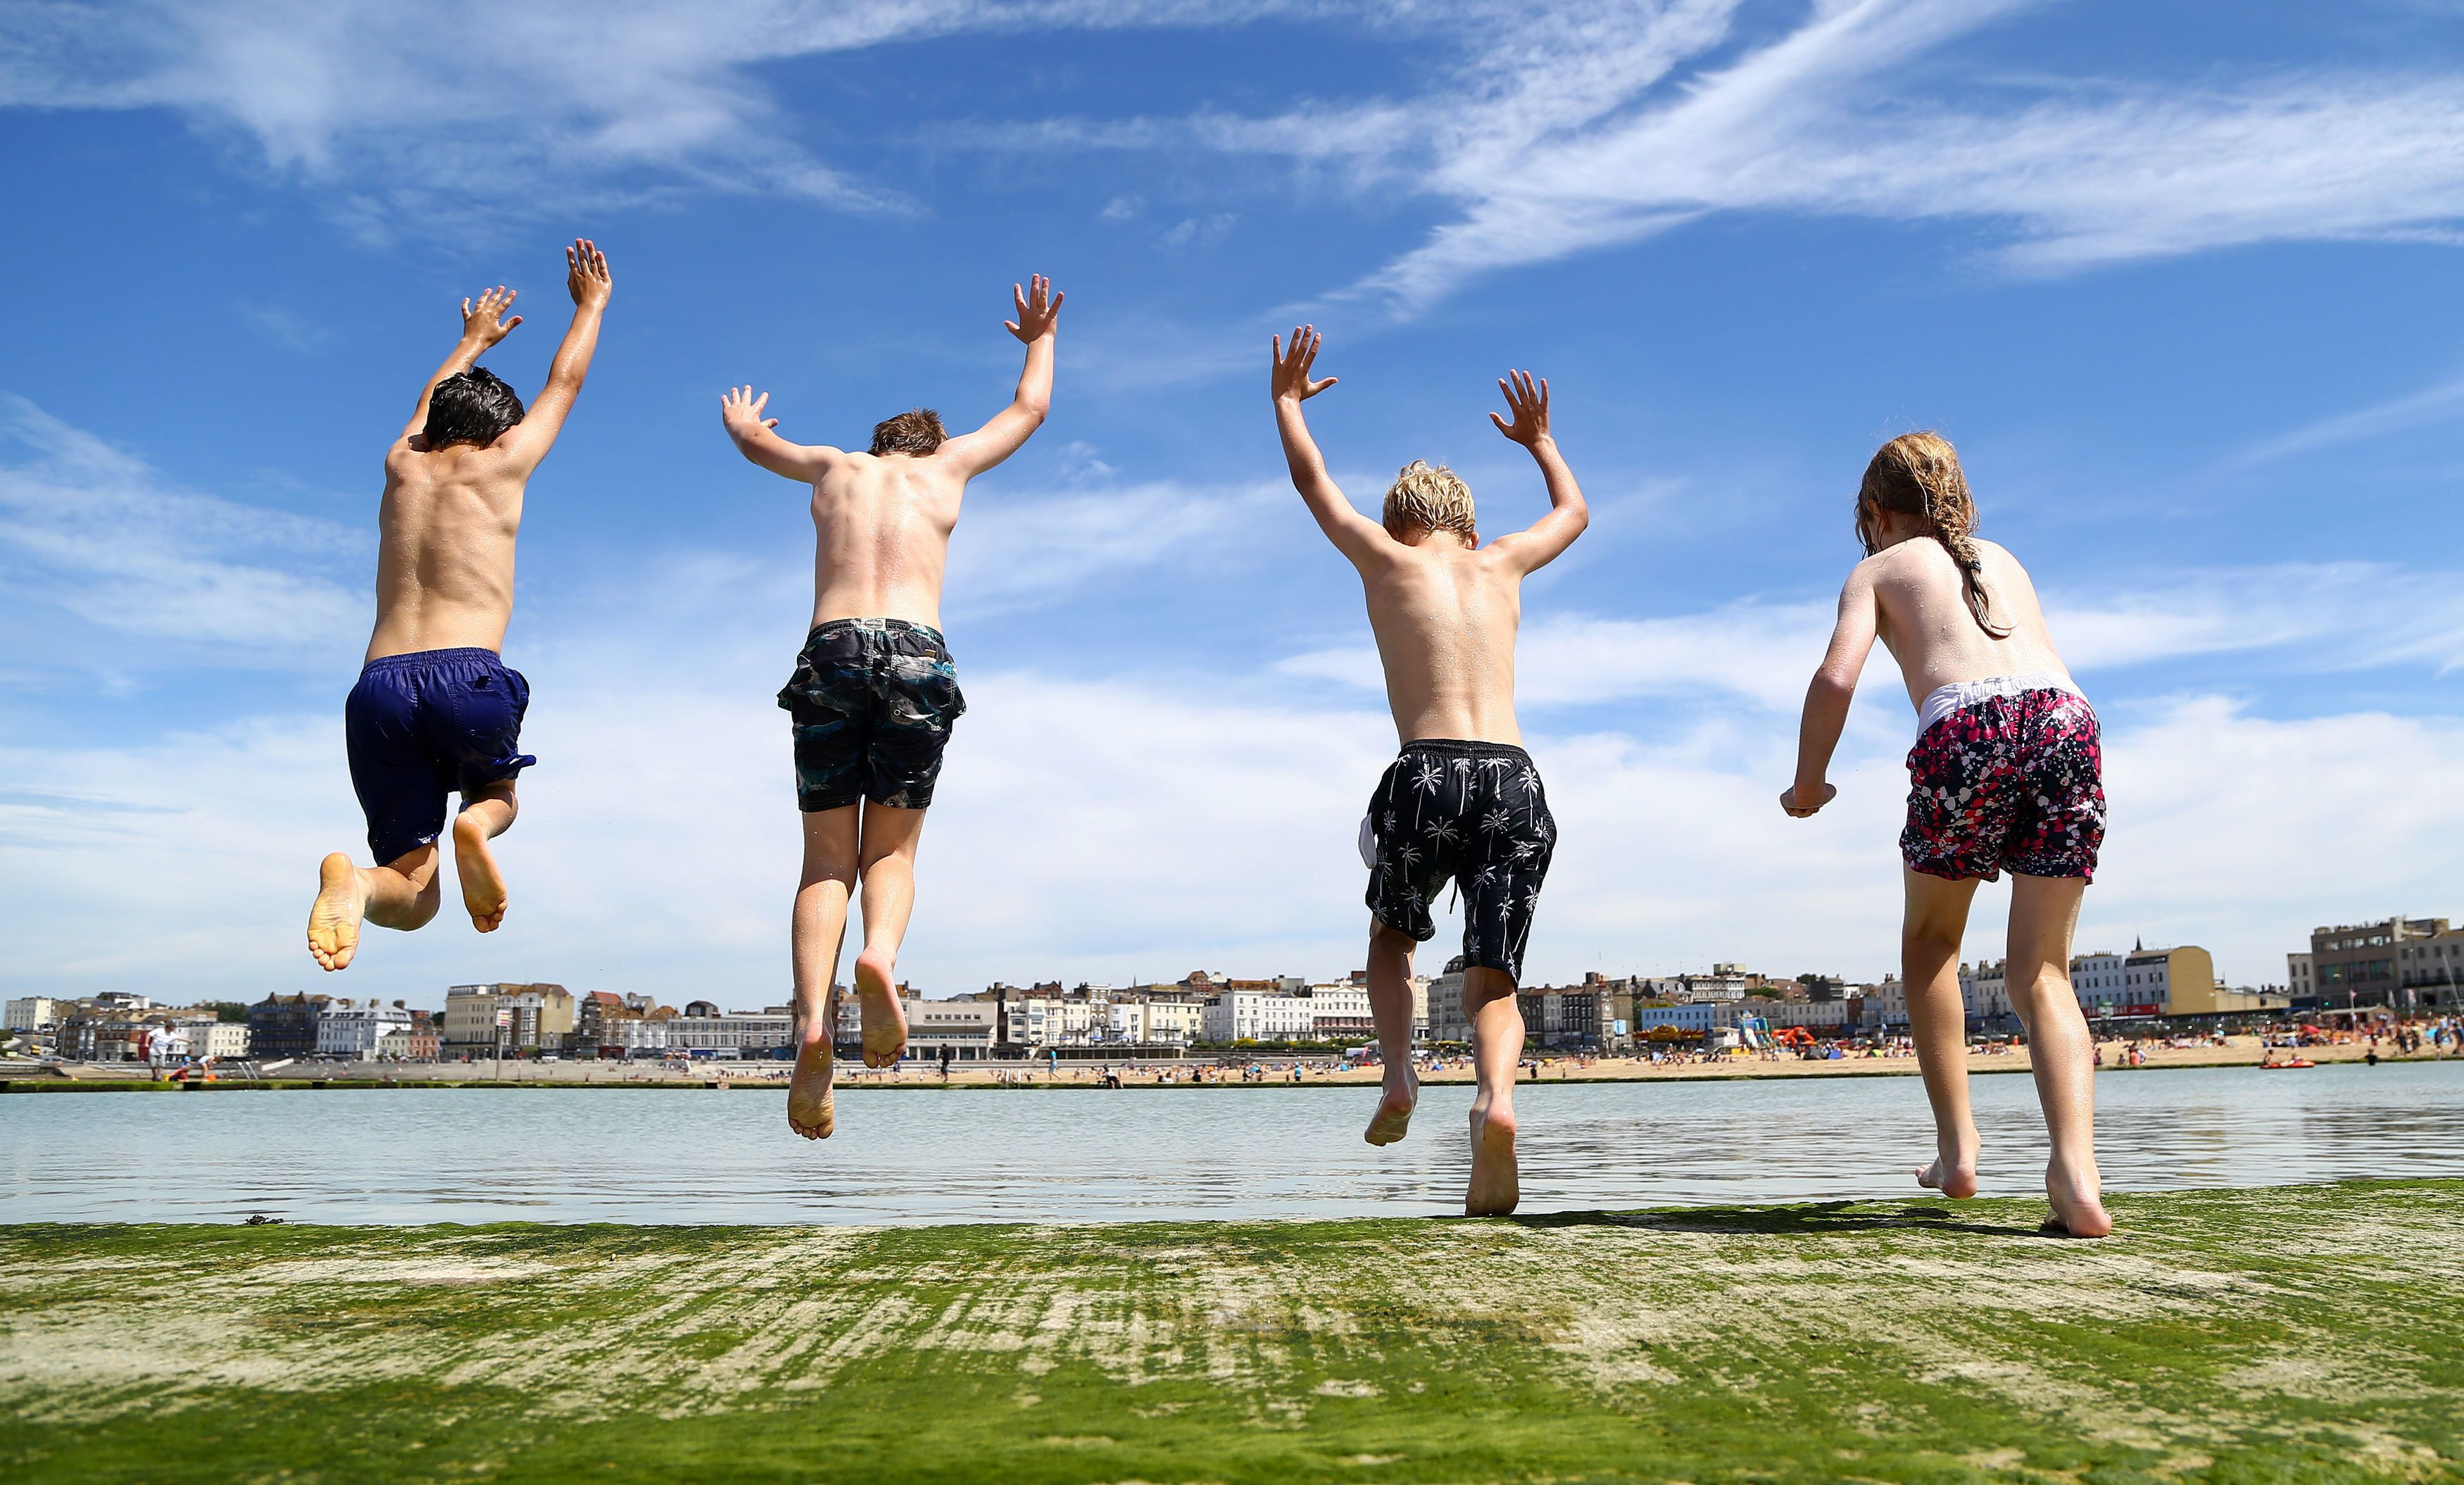 Children enjoy jumping into a sea pool in Margate,